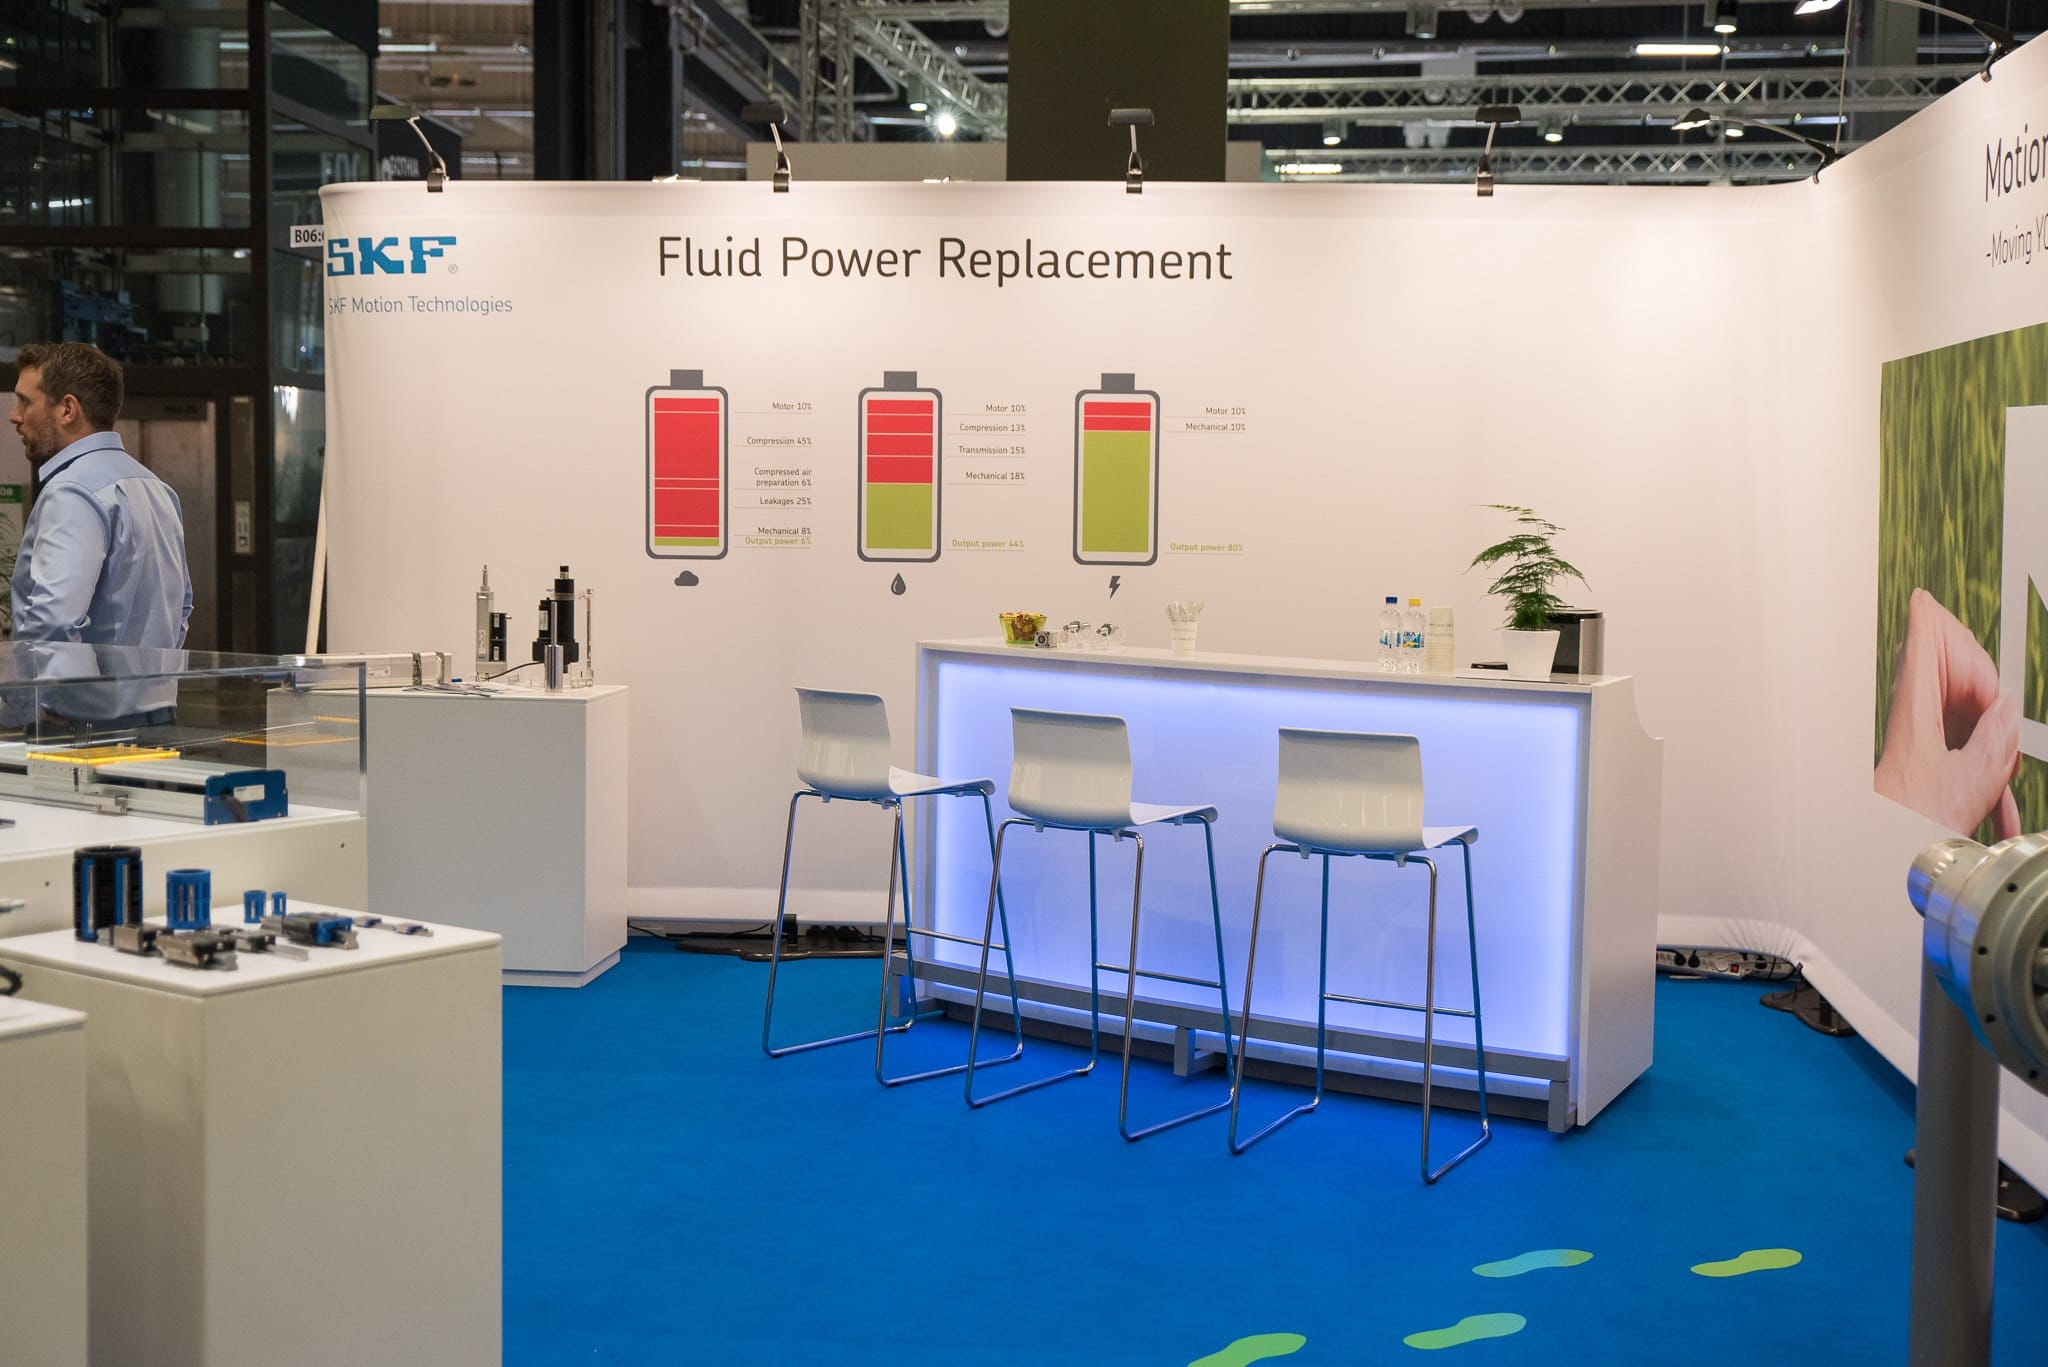 LED Bardisk Front Row Exhibitions Scanautomatic 2018 SKF Motion Technologies